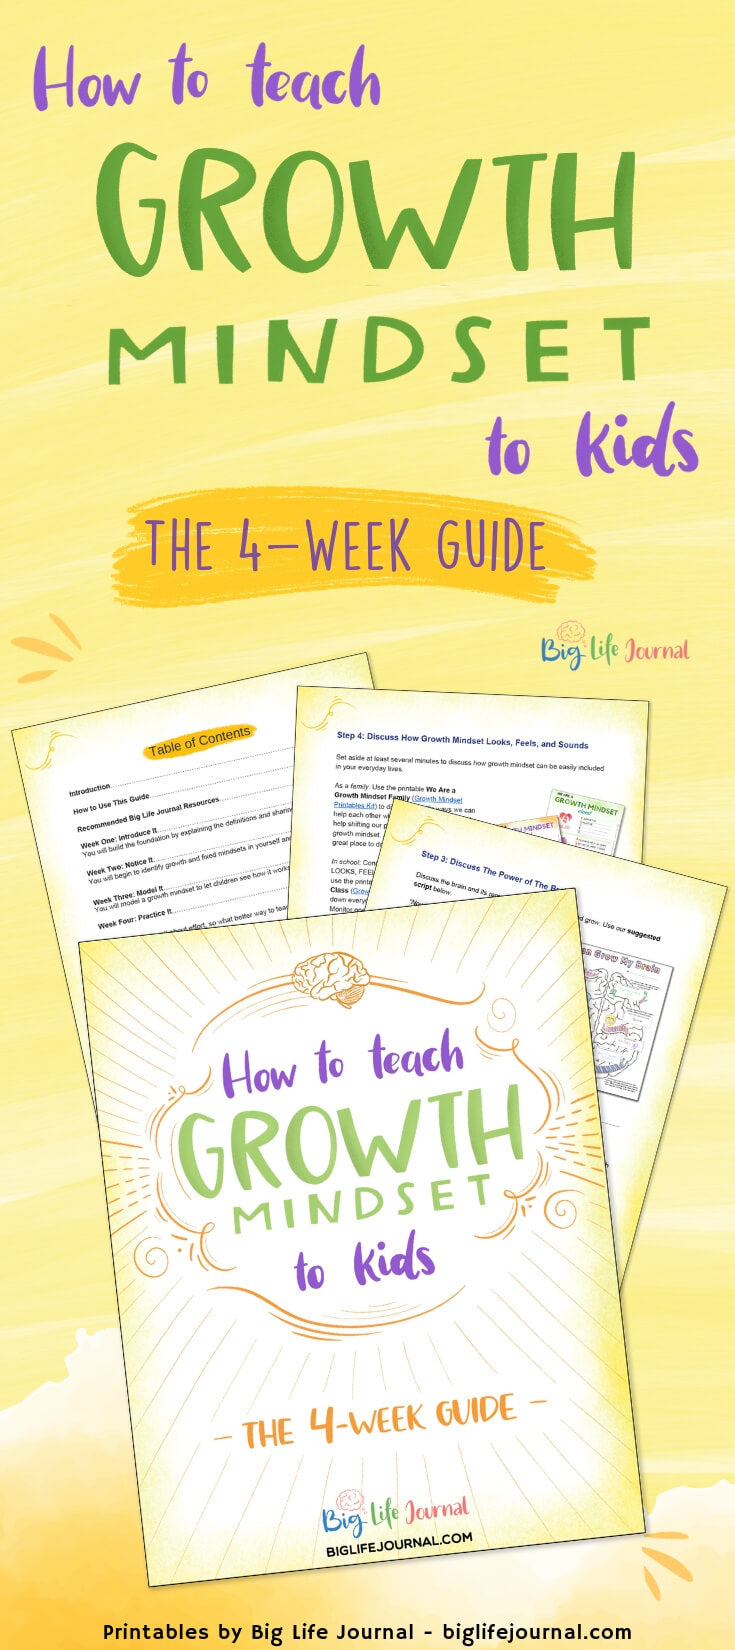 How to Teach Growth Mindset to Kids (The 4-Week Guide) – Big Life